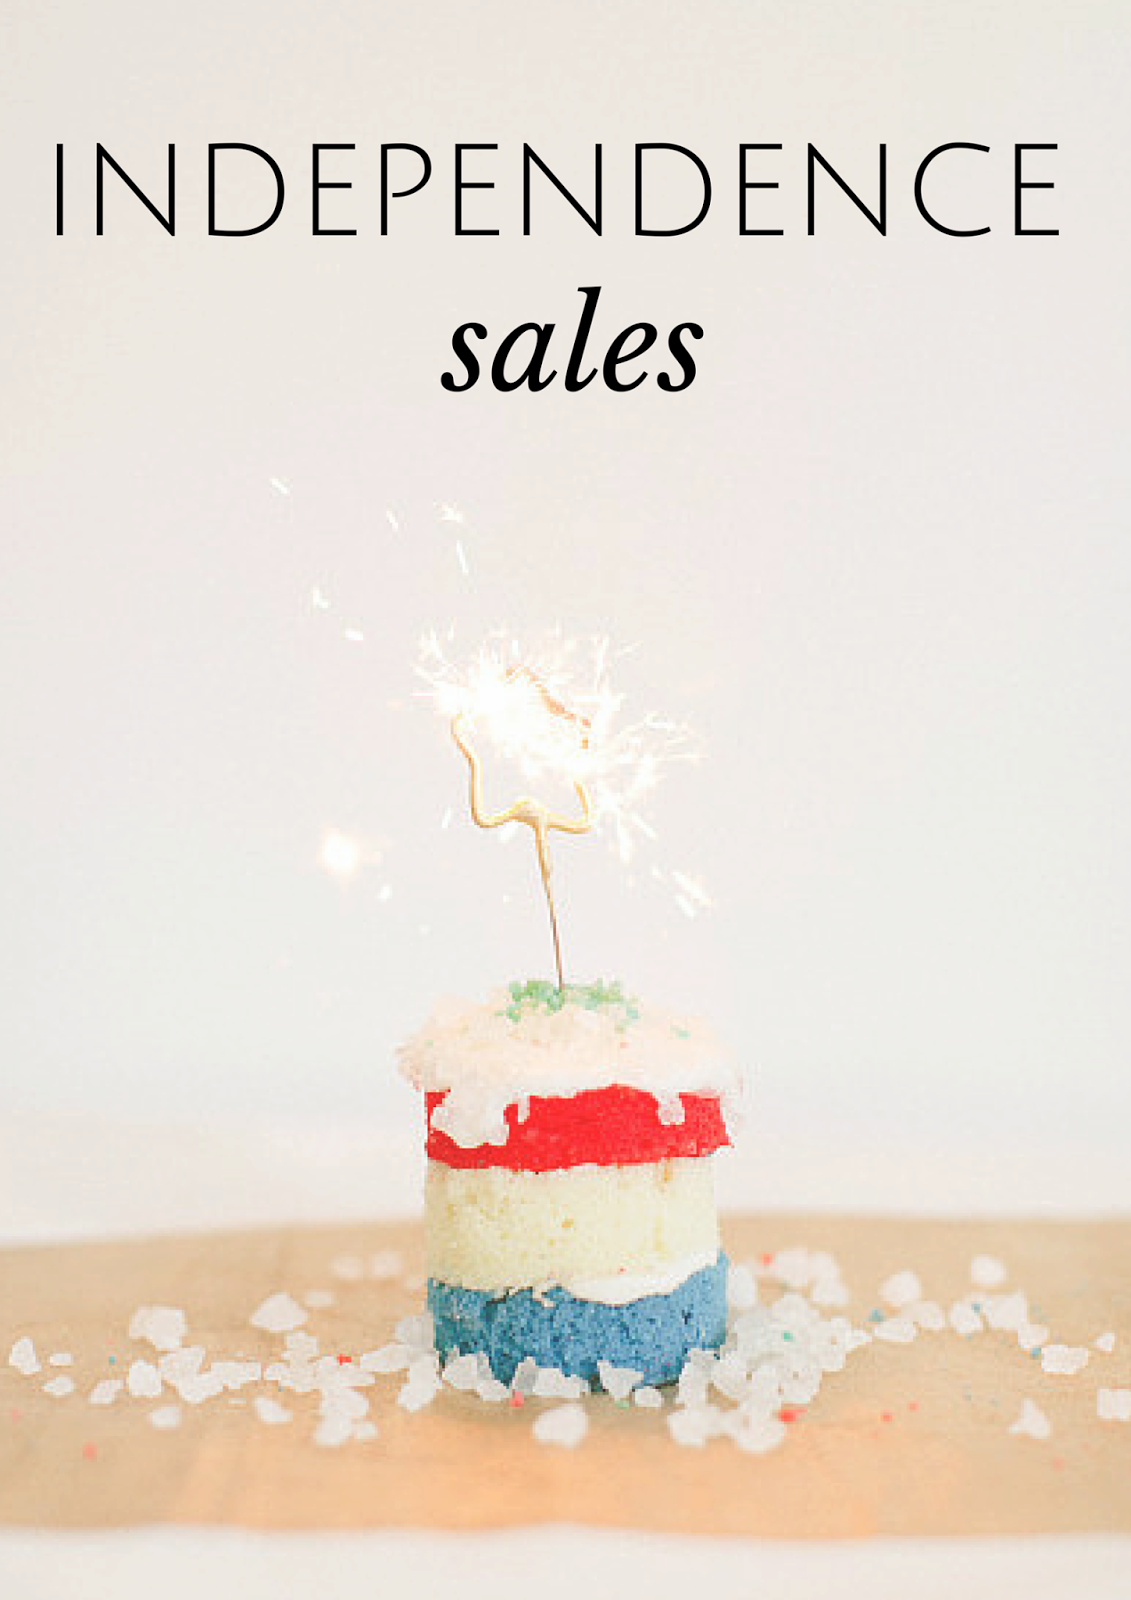 Independence sales, july 4th, independence day